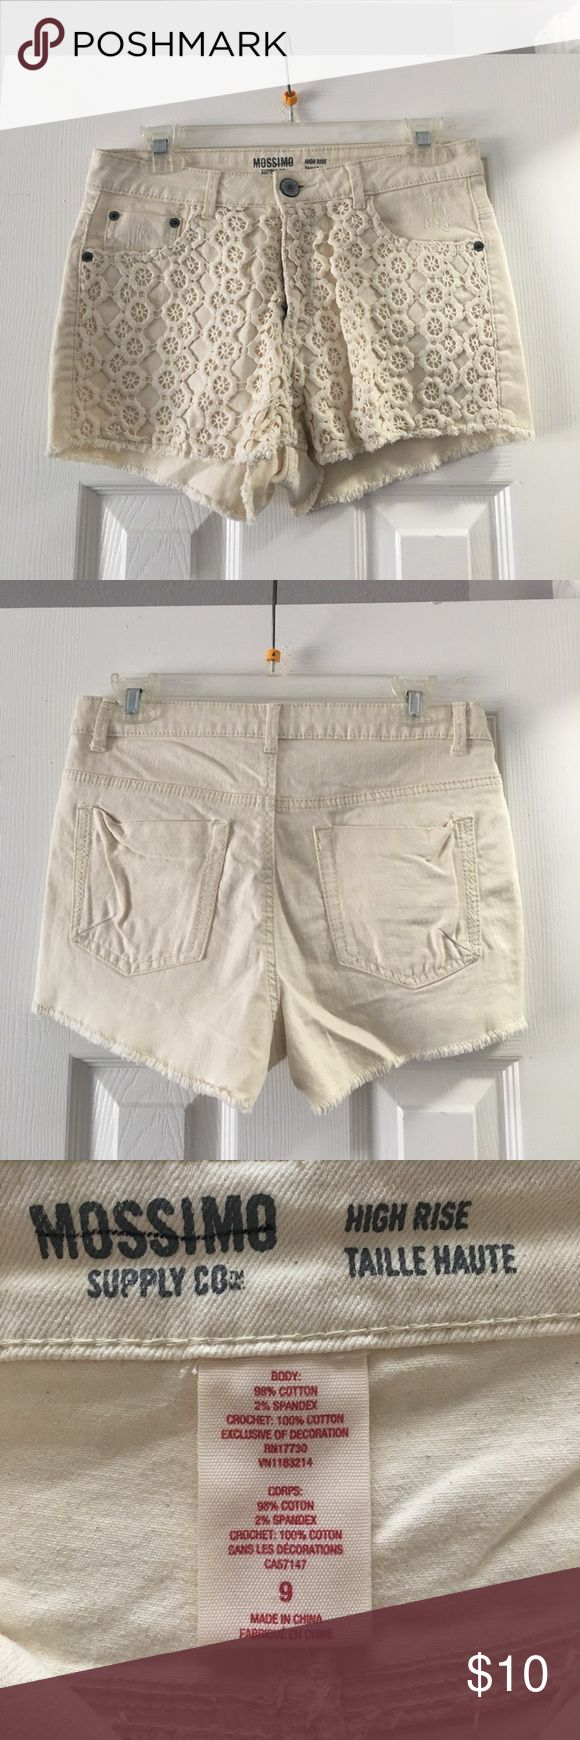 Mossing Supply Co by Target High Rose Lace Shorts Lace High waisted Cream shorts  size: 9  color: cream  condition: only worn once; no signs of wear or tear or damage  comes from a smoke free home Mossimo Supply Co. Shorts